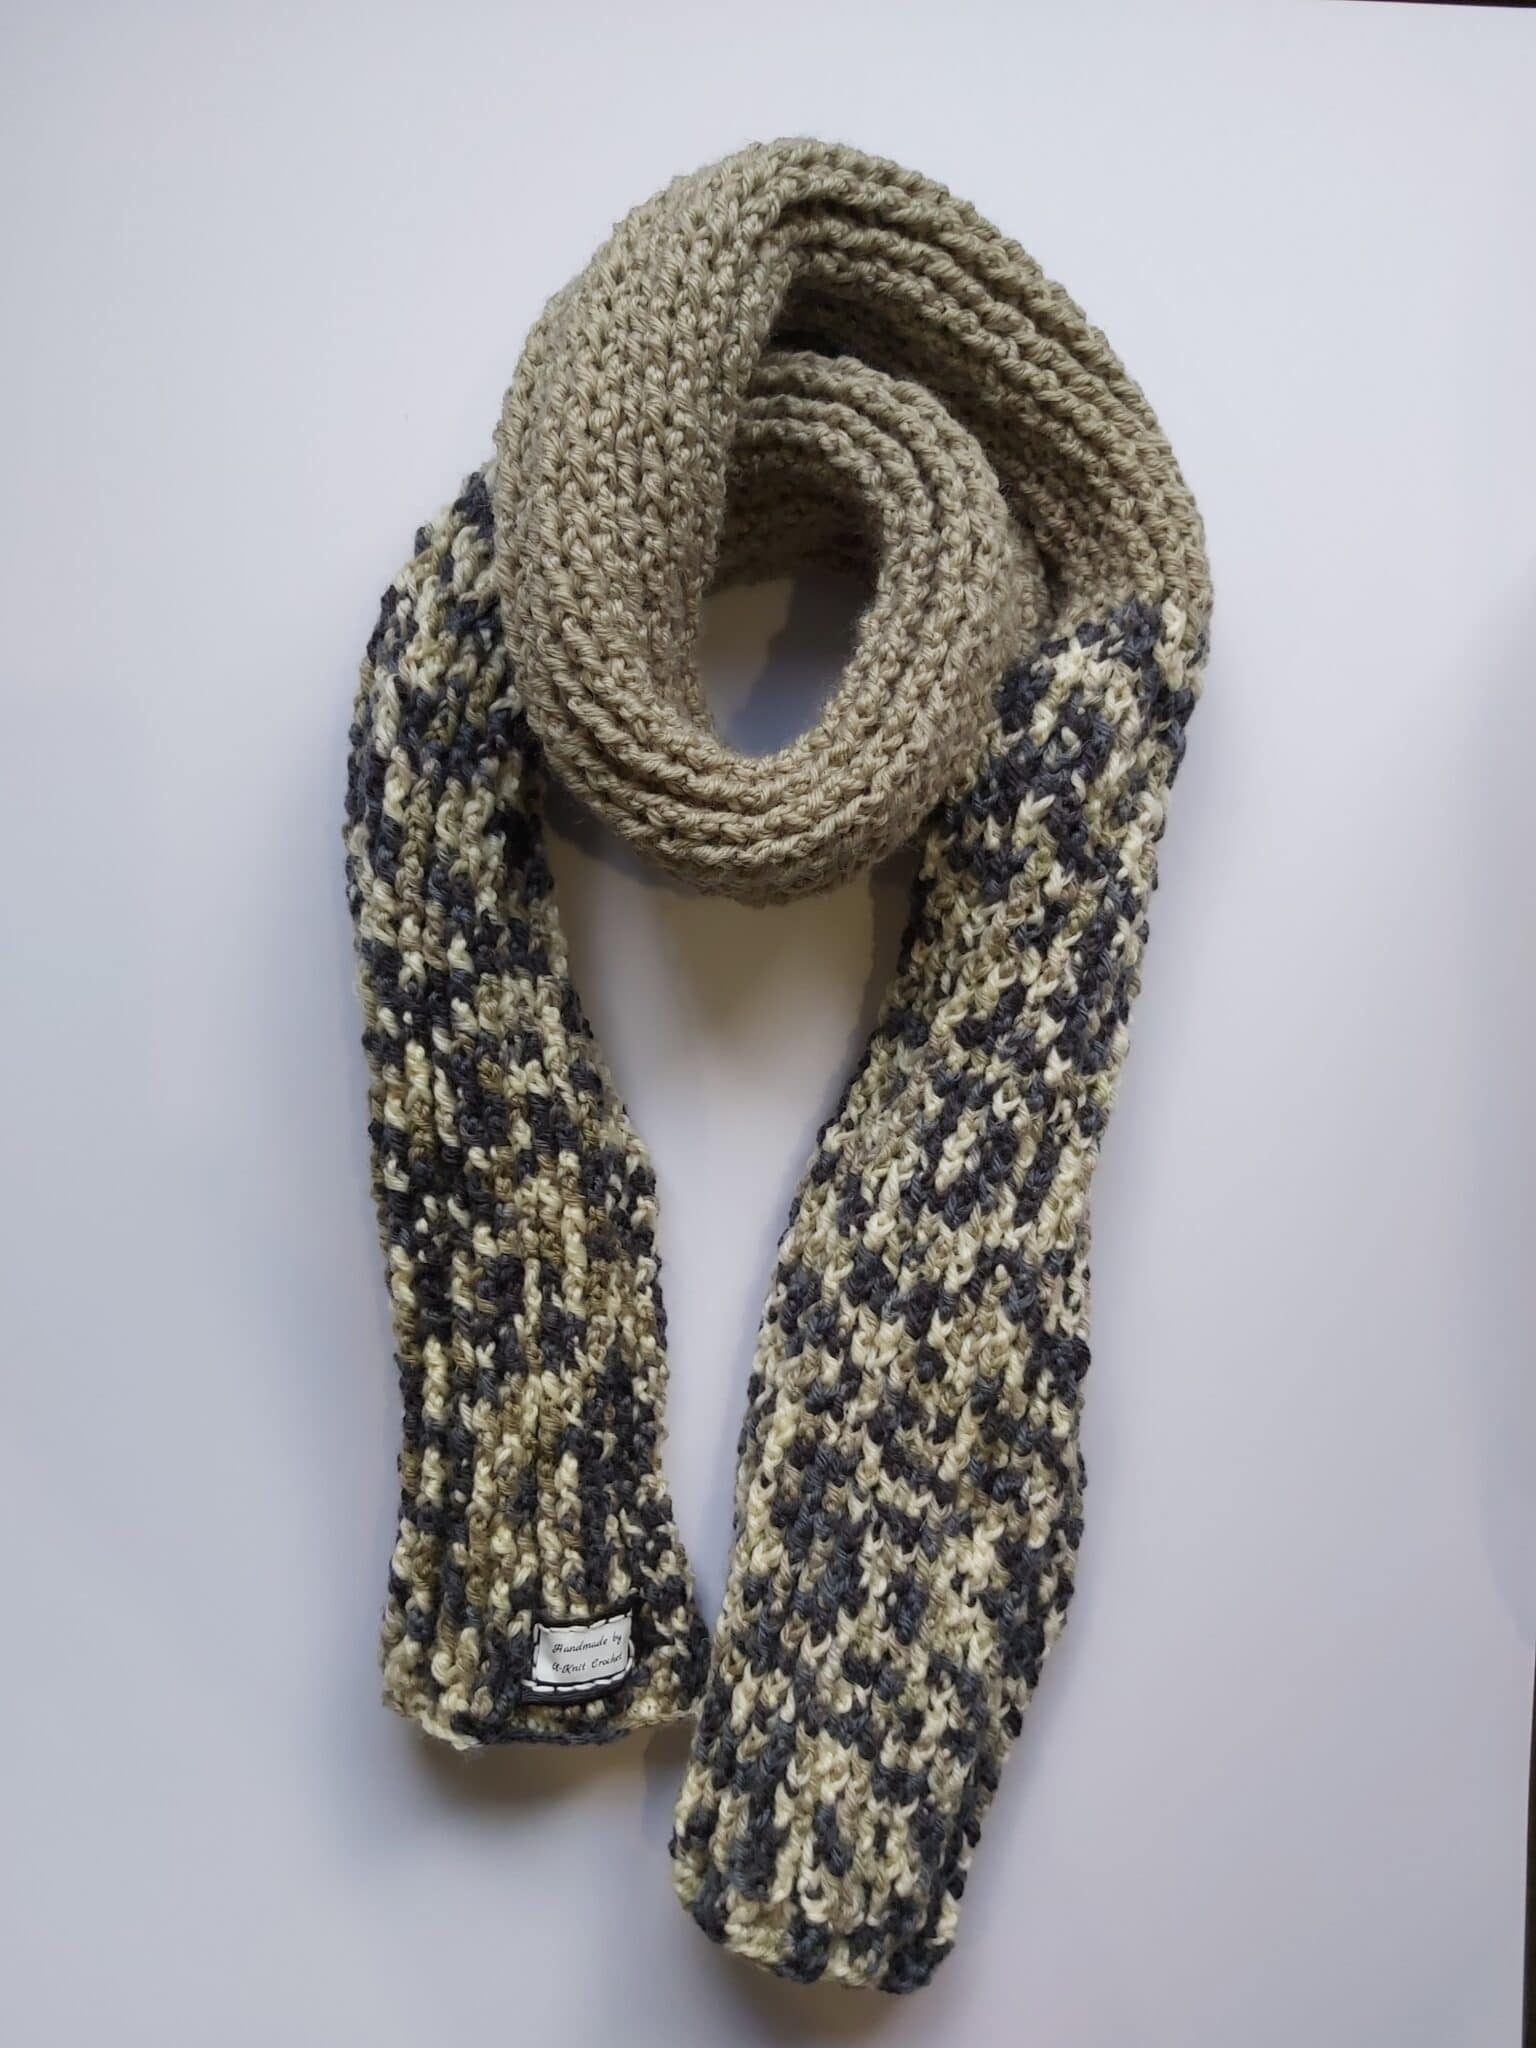 Black/Beige Ribbed Scarf Handmade By U-Knit Crochet